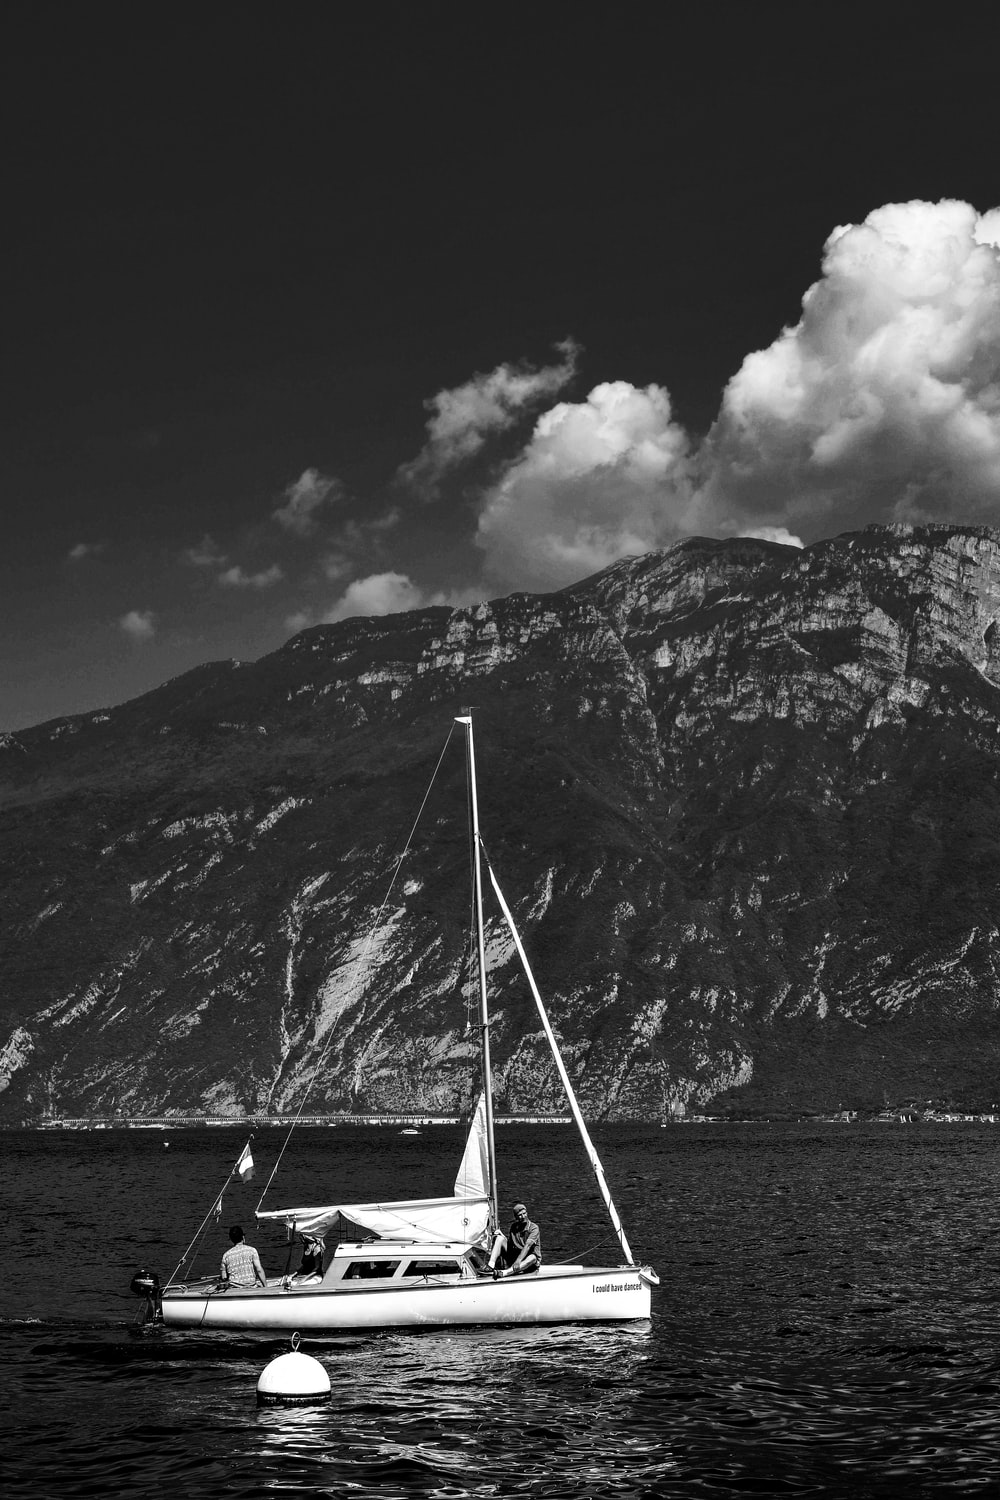 grayscale photography of sailing boat under cloudy sky